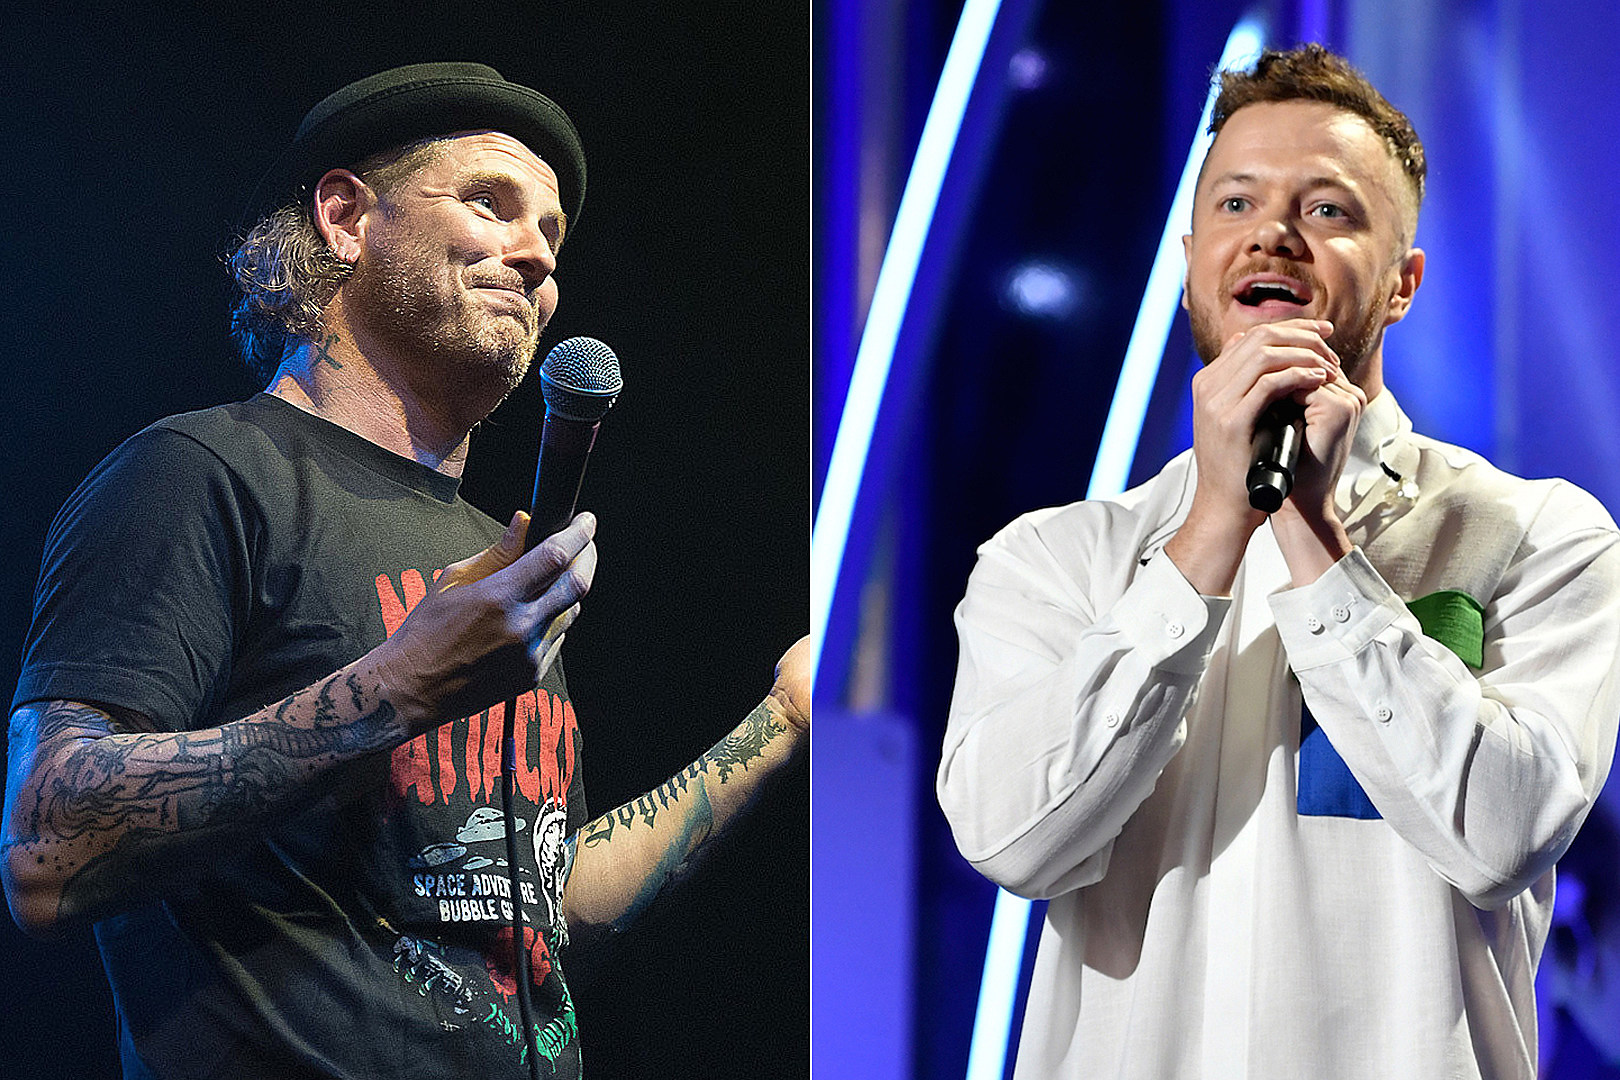 Corey Taylor: Imagine Dragons Are the New Nickelback